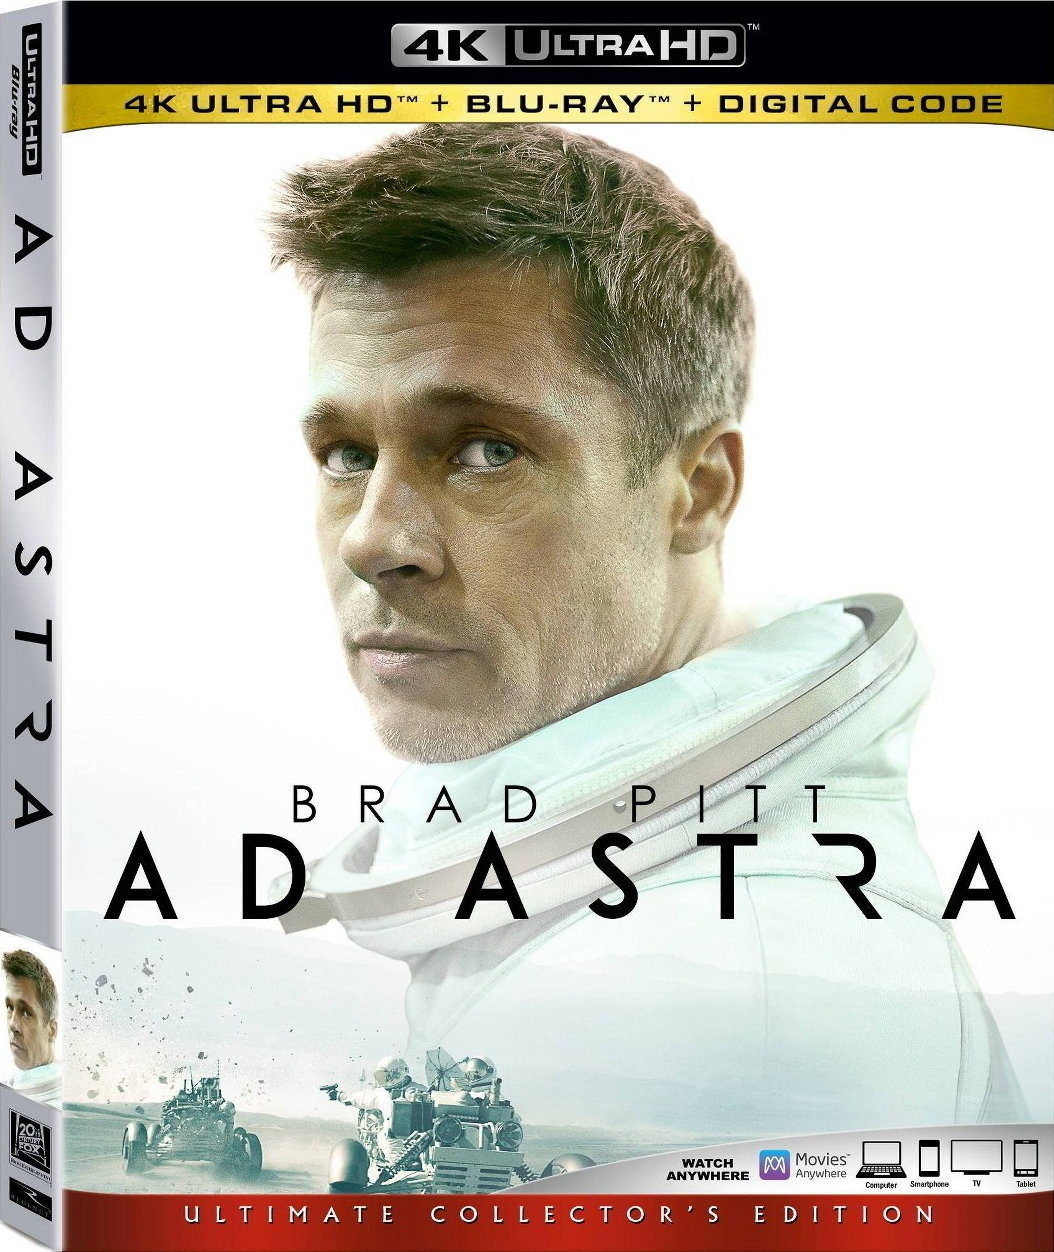 Ad Astra (2019) poster image